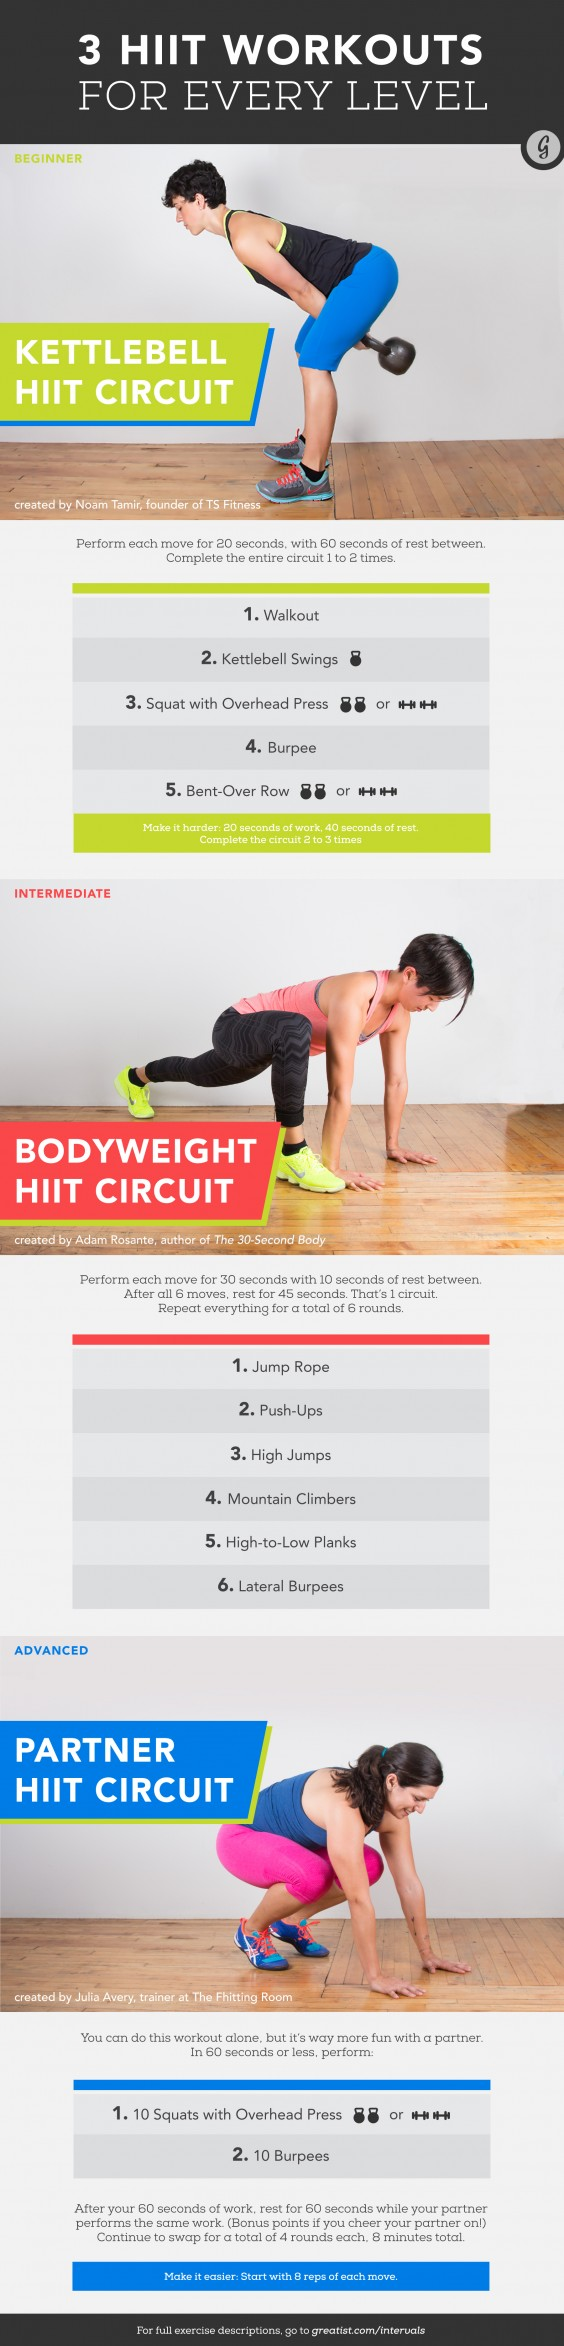 Interval Training Workouts for Every Level